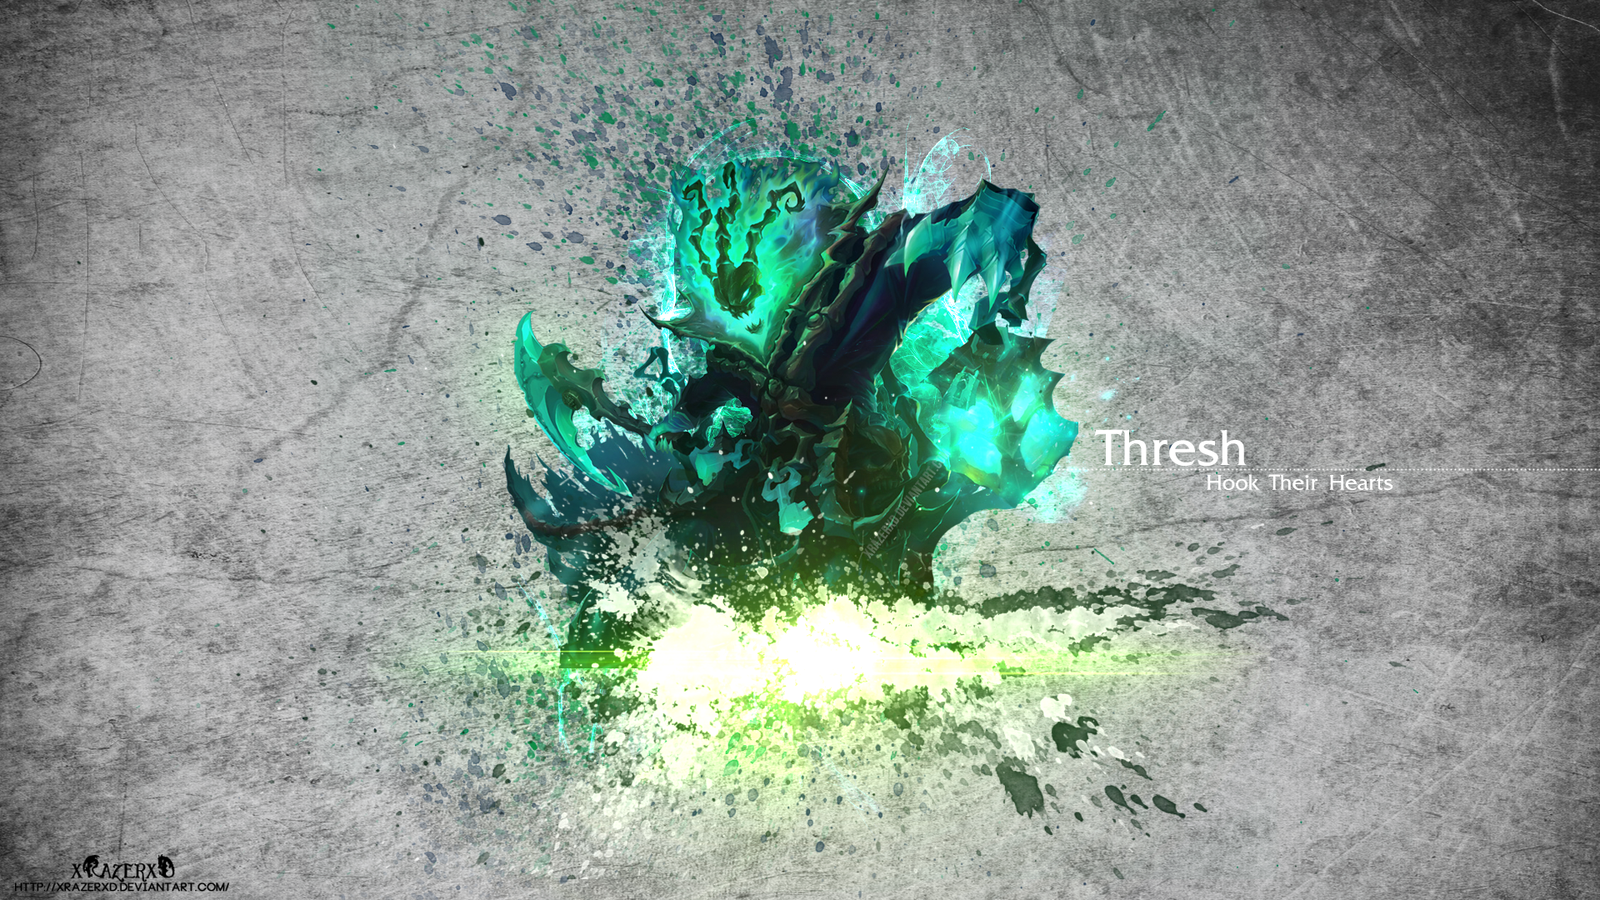 Top Thresh HD Wallpapers | Awesome Pictures